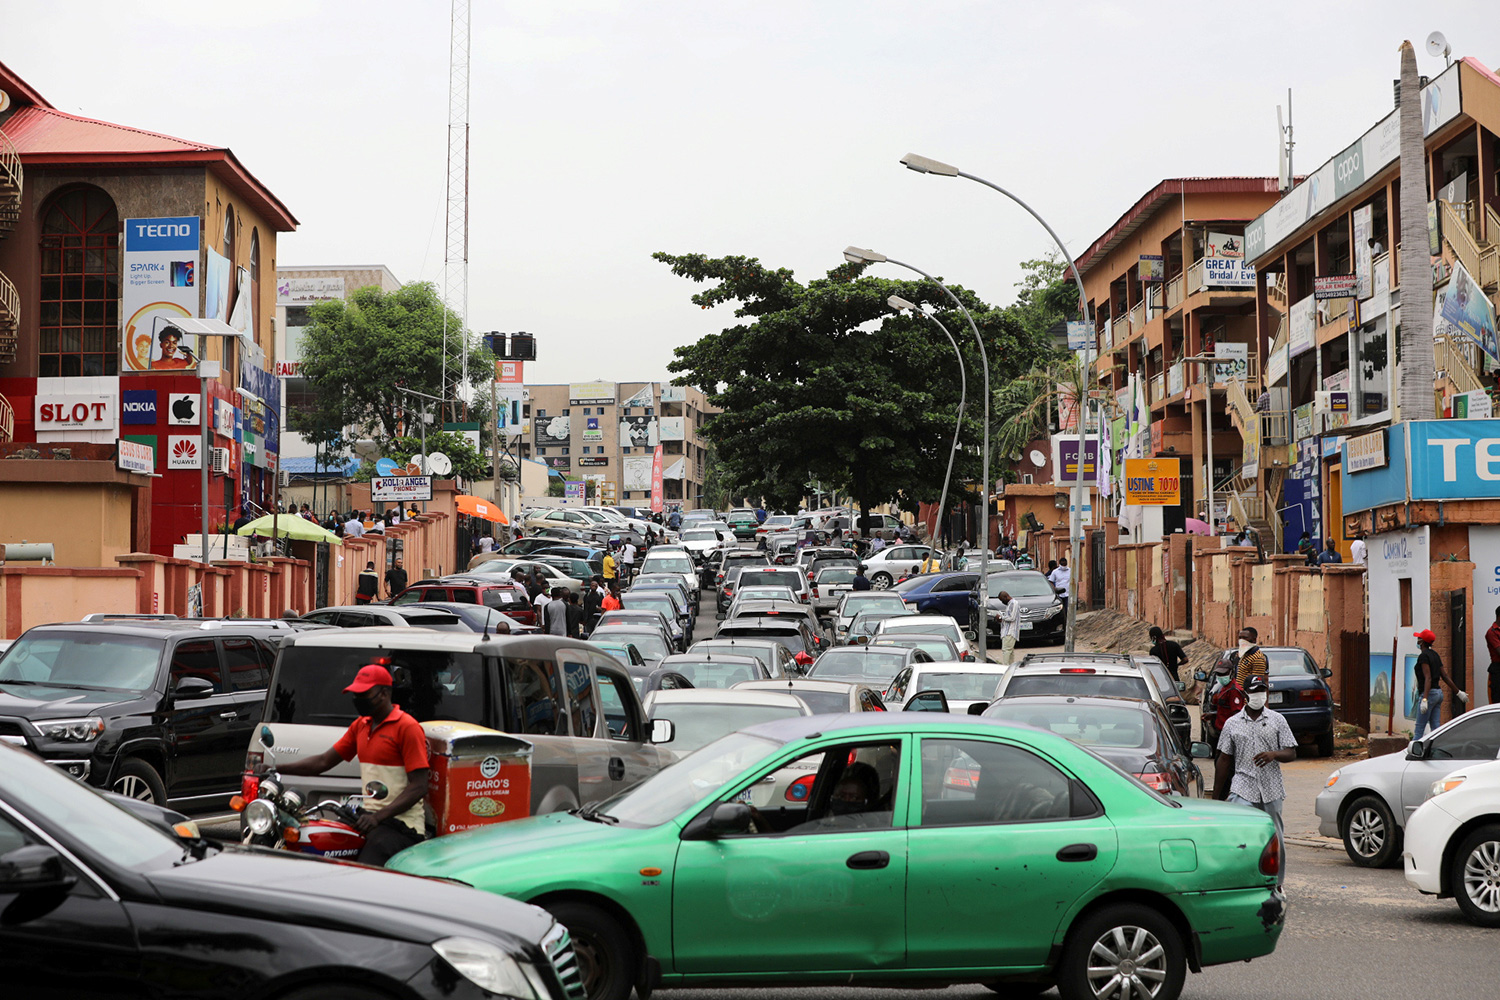 The photo shows a busy street locked in congestion of cars and traffic.